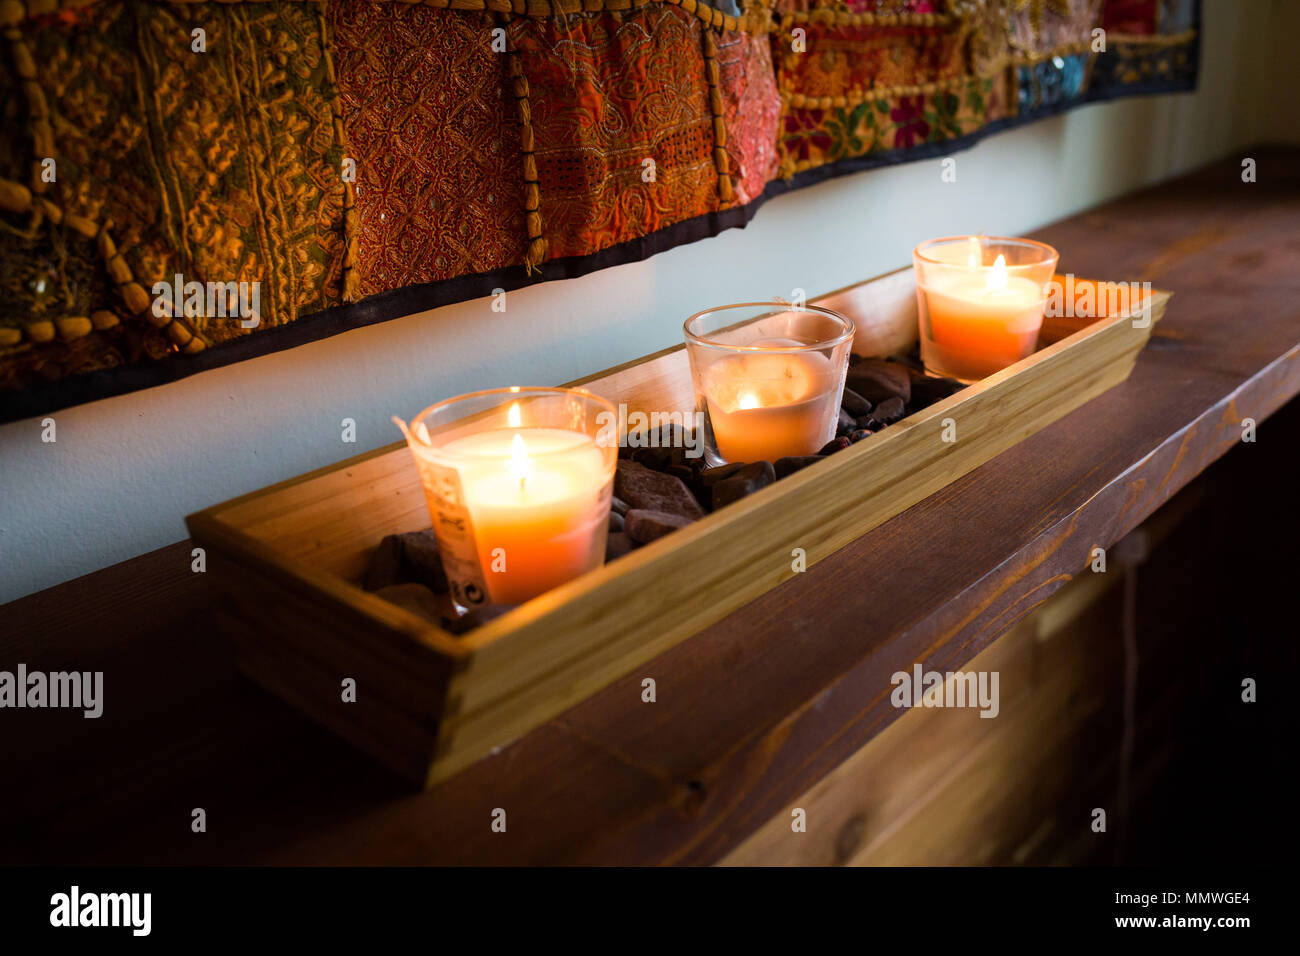 Romantic candles room decoration cozy bedroom interior & Romantic candles room decoration cozy bedroom interior Stock Photo ...